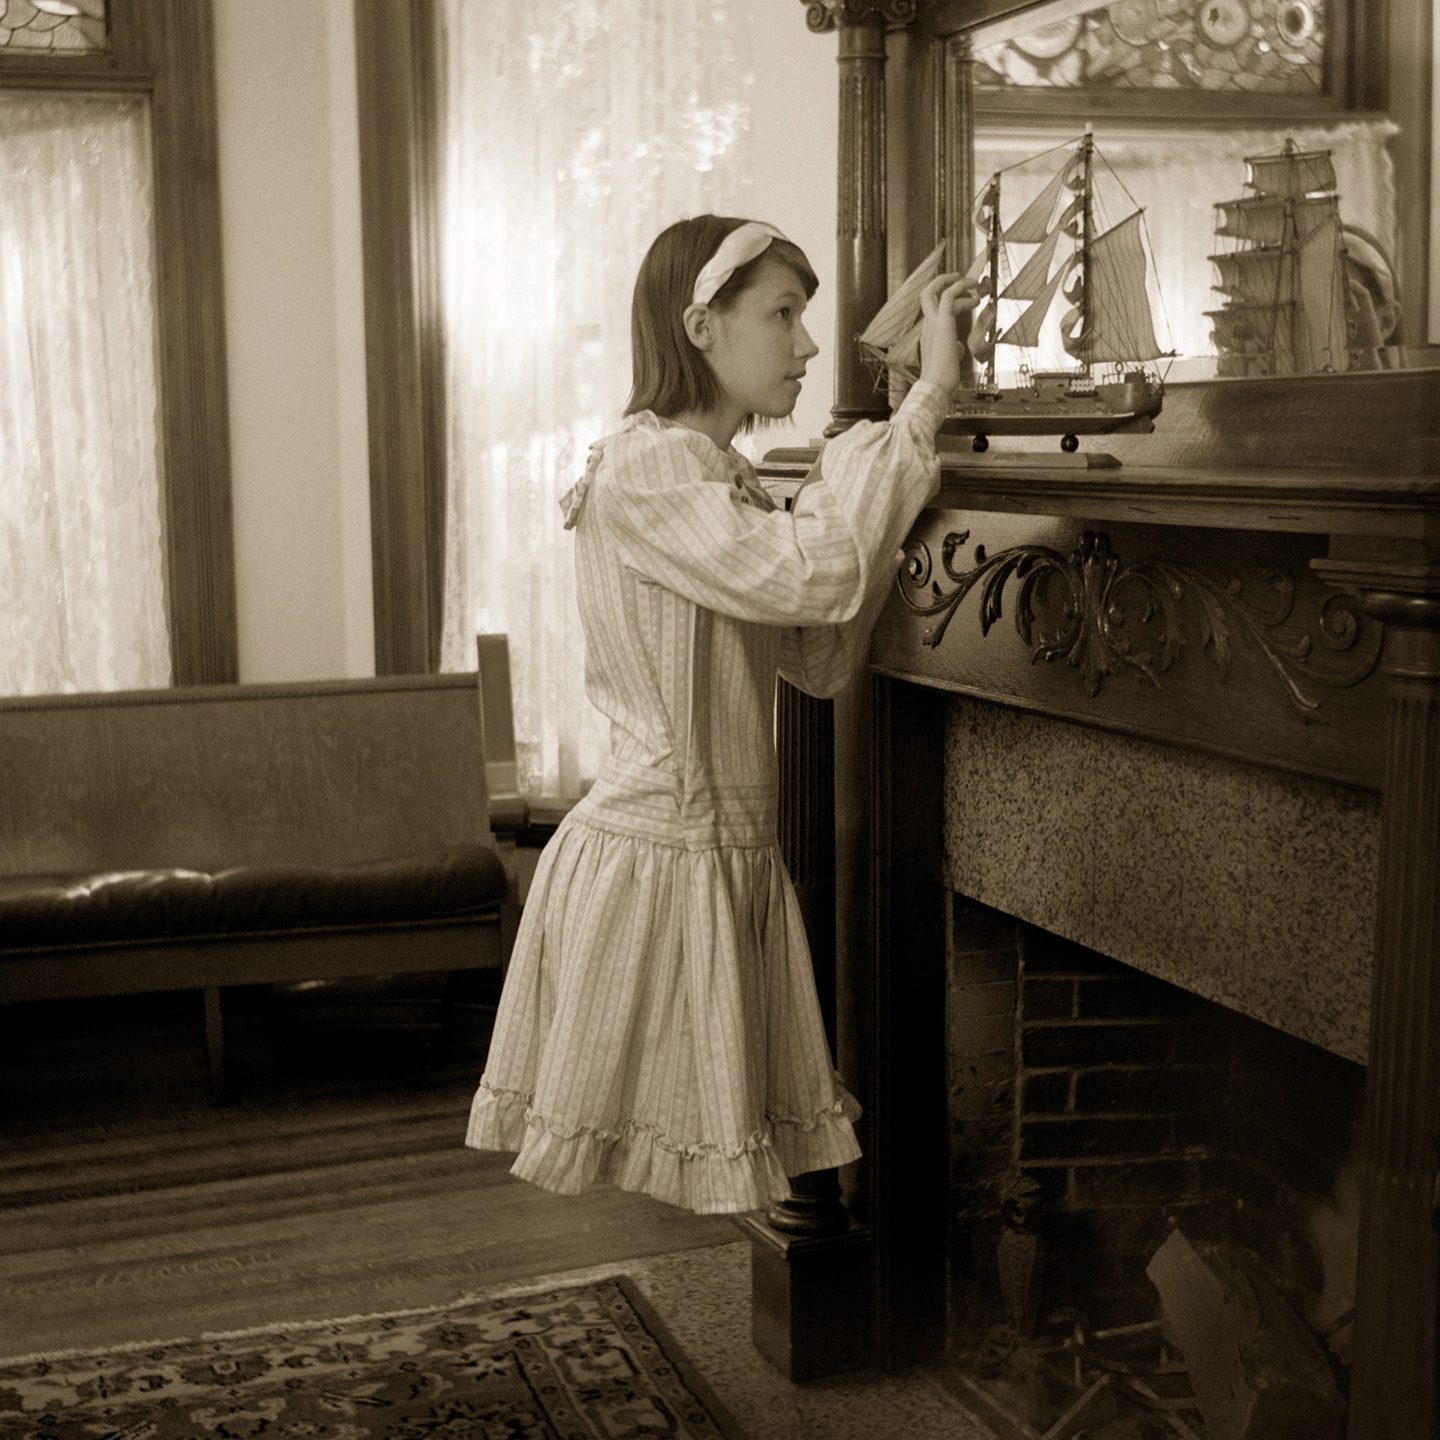 """Frances at the Fireplace"" (from ""A Case of Levitation: The Story of Frances Naylor"") by Christopher Schneberger"